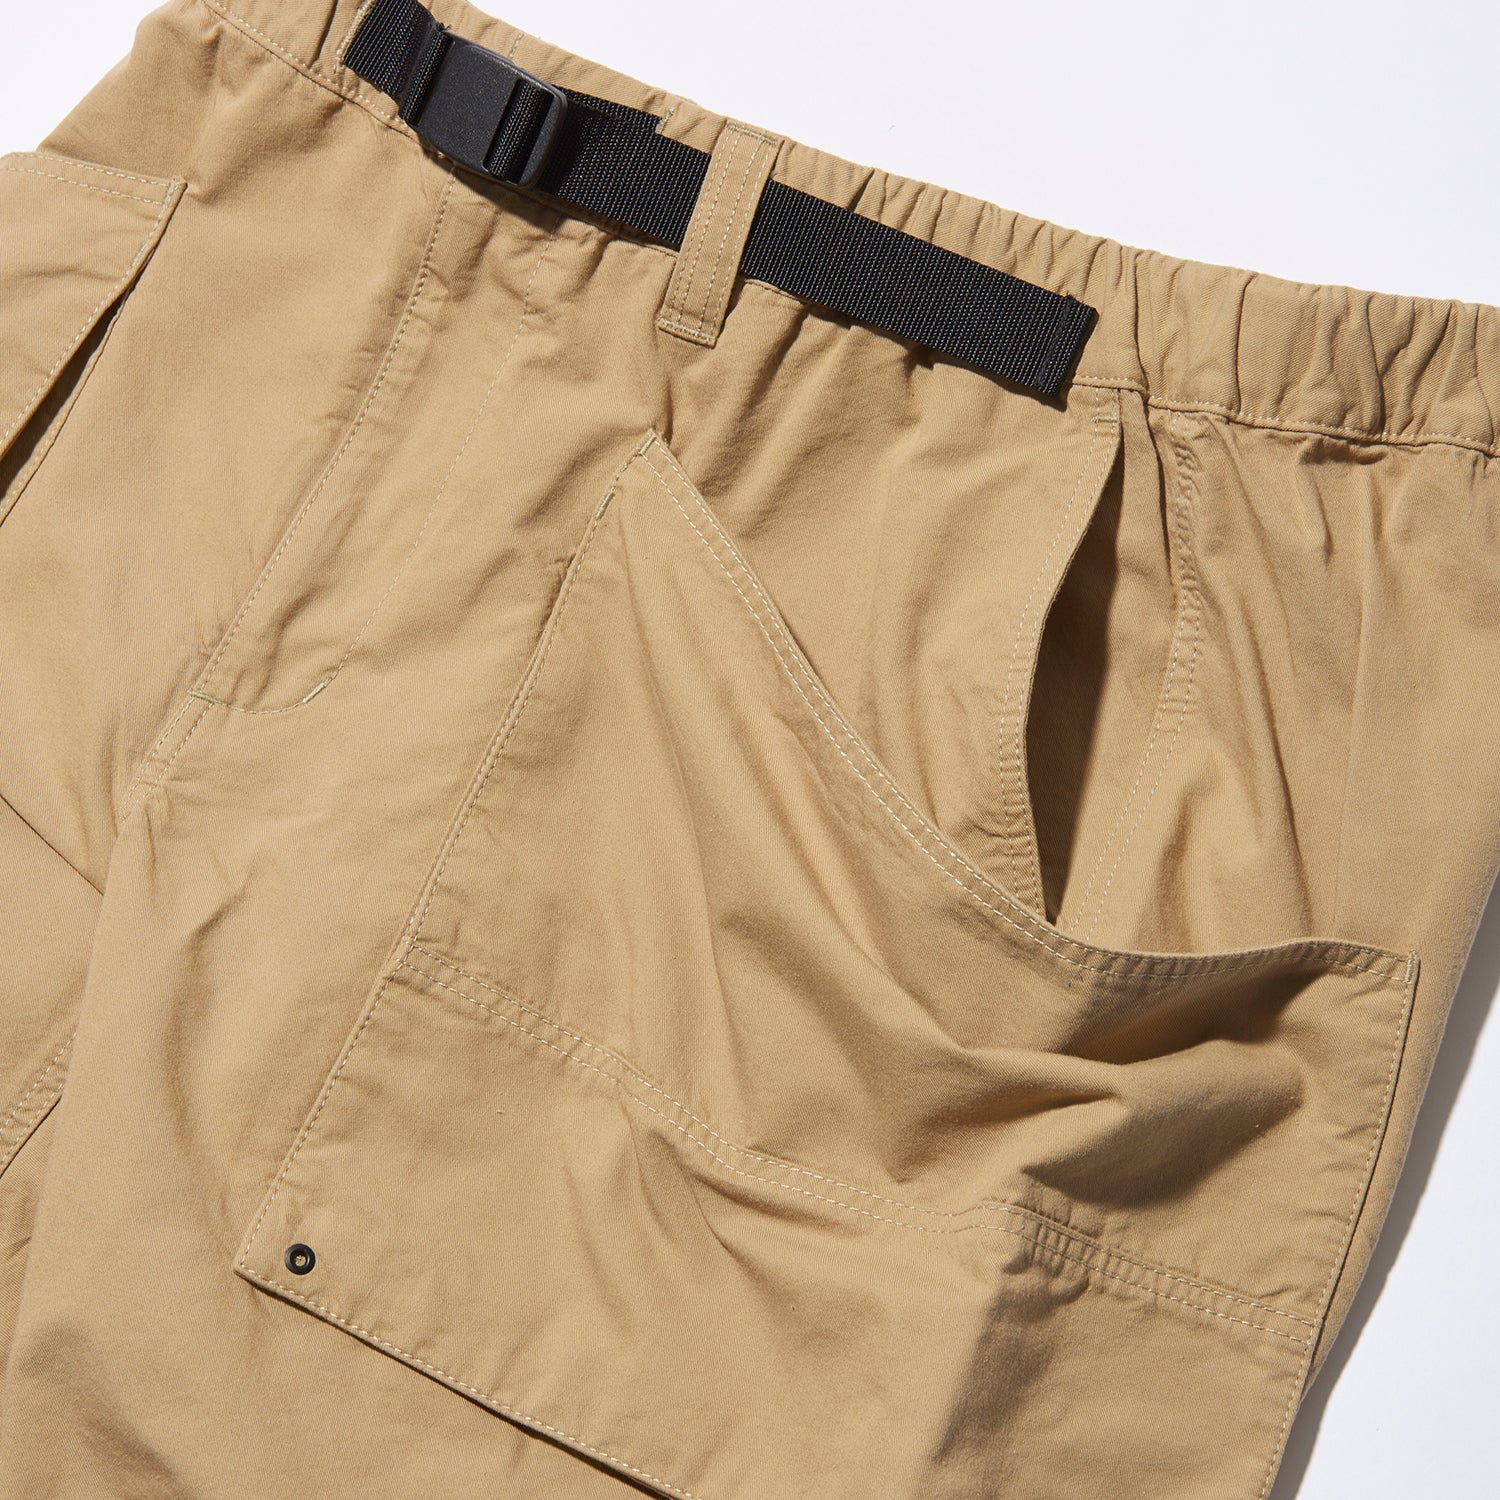 CORDURA® Mount Cargo Chino Shorts